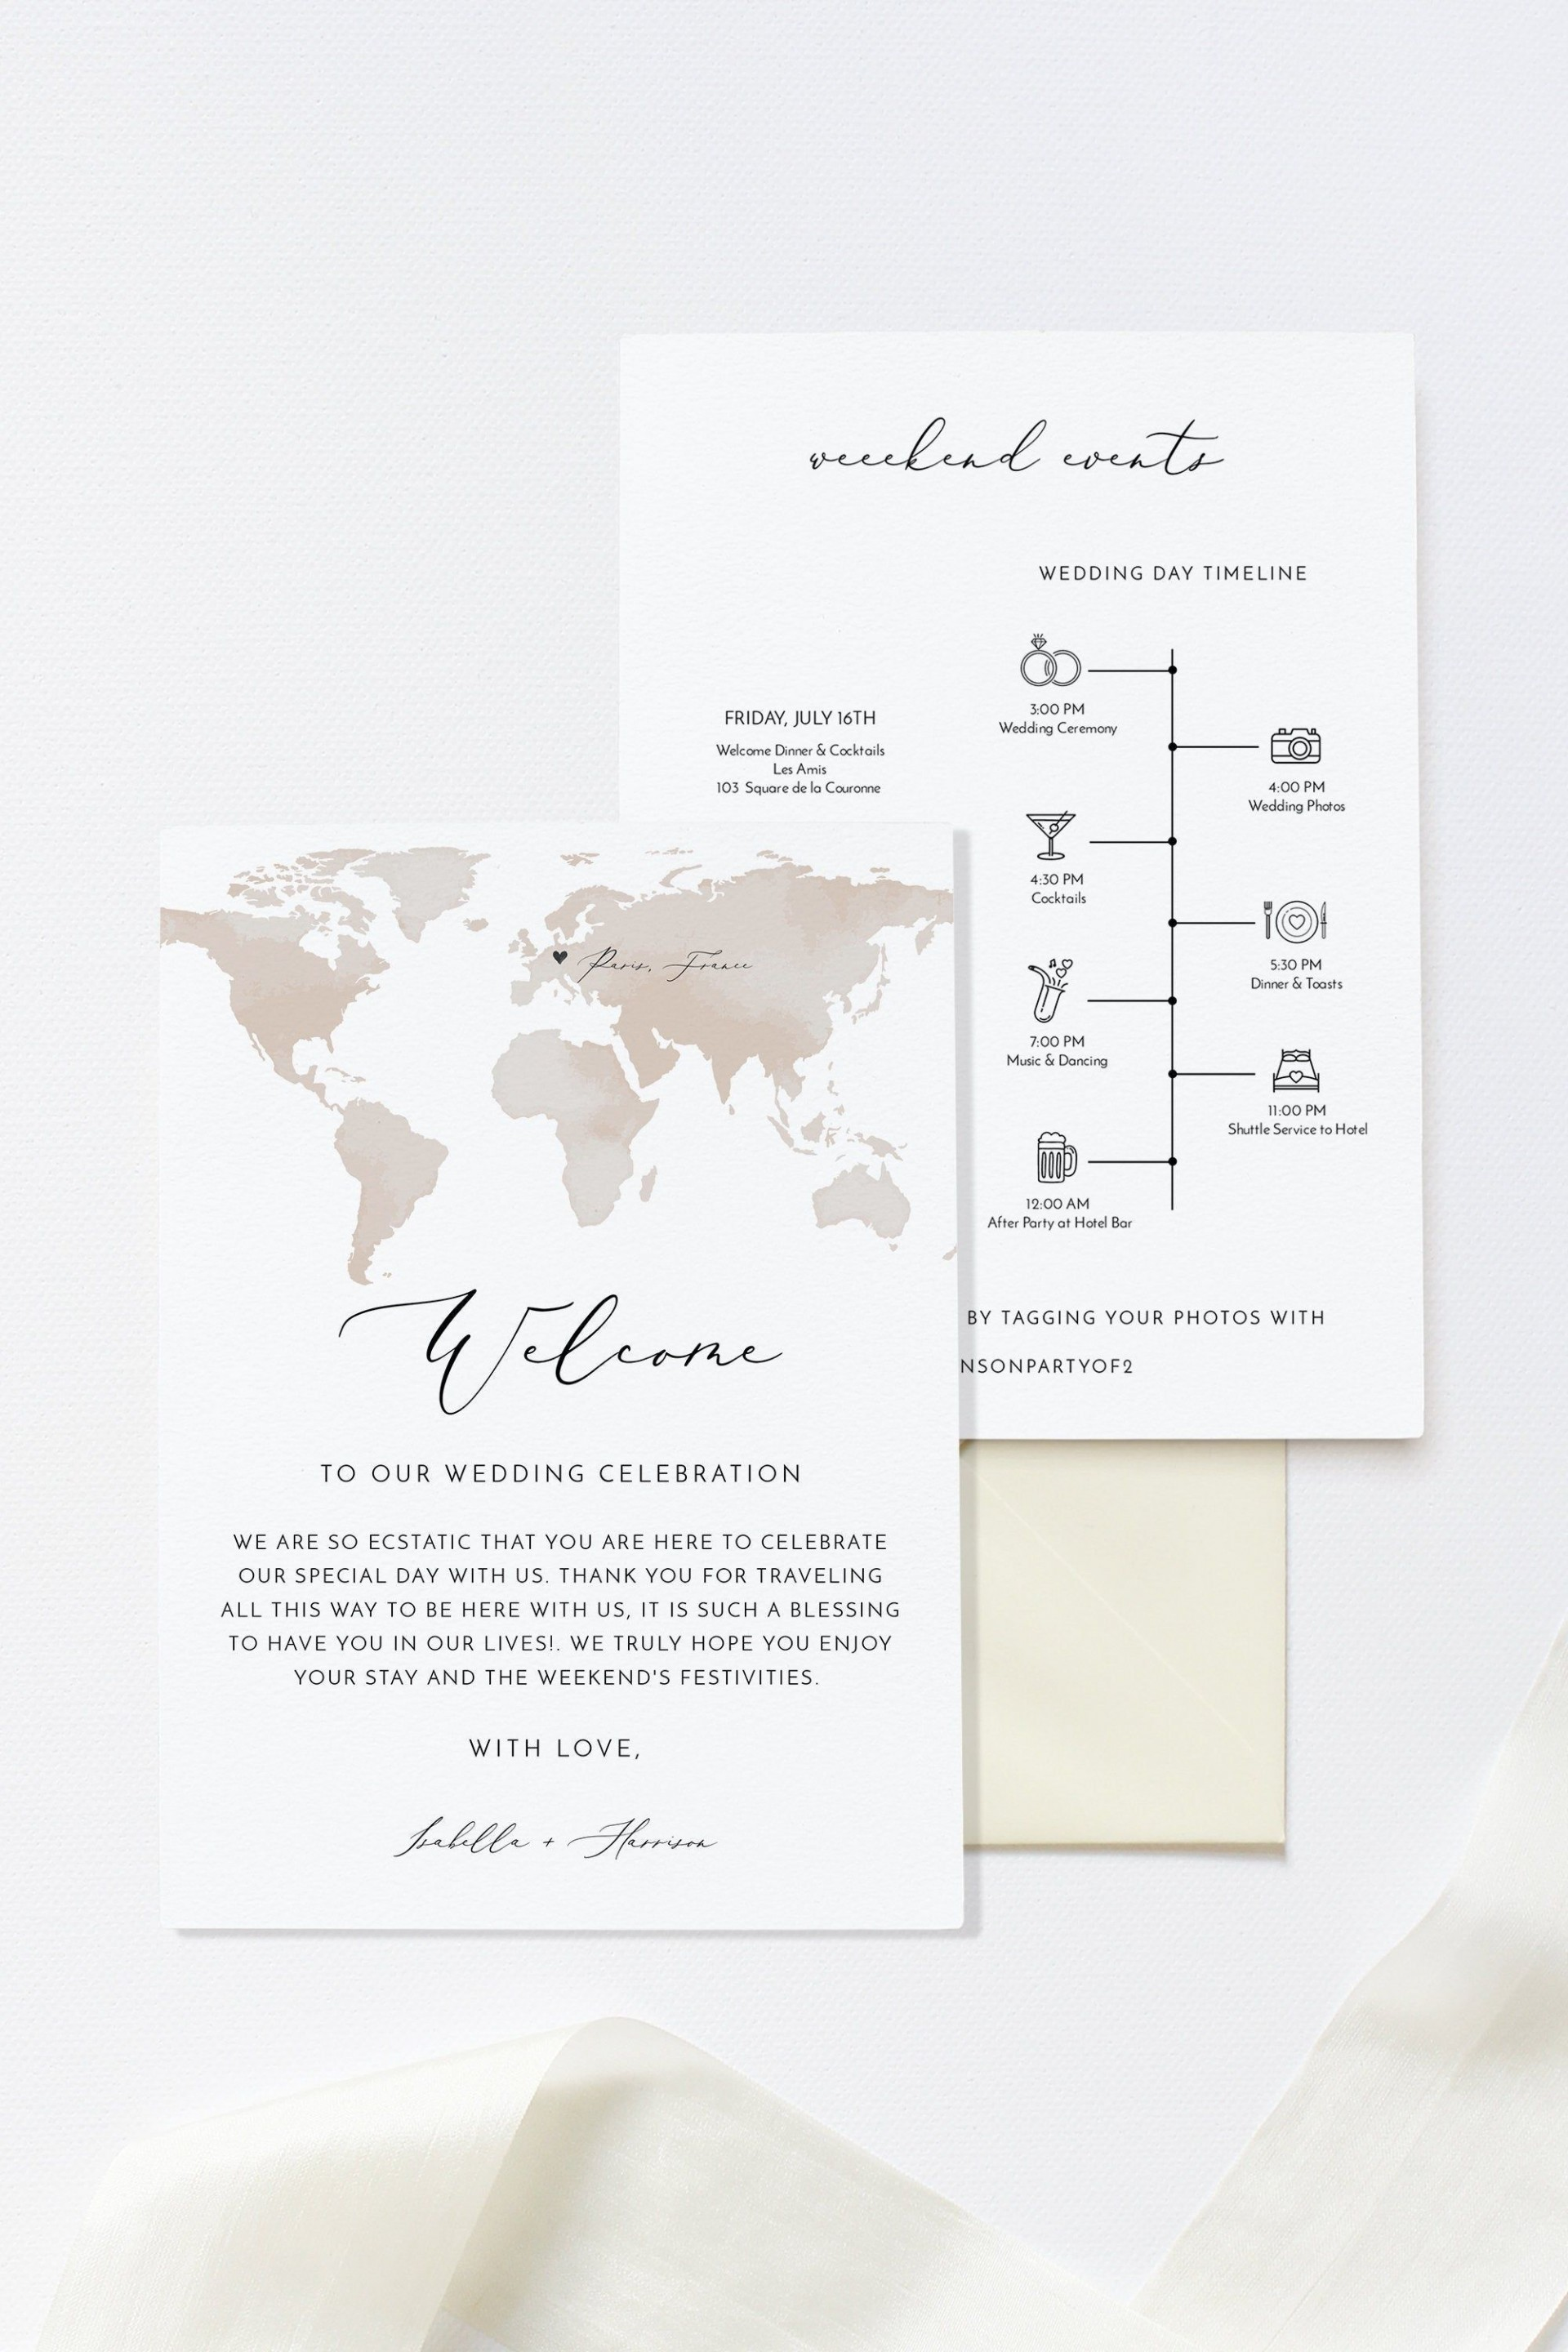 000 Staggering Destination Wedding Itinerary Template Photo  Welcome Letter And Sample Free1920